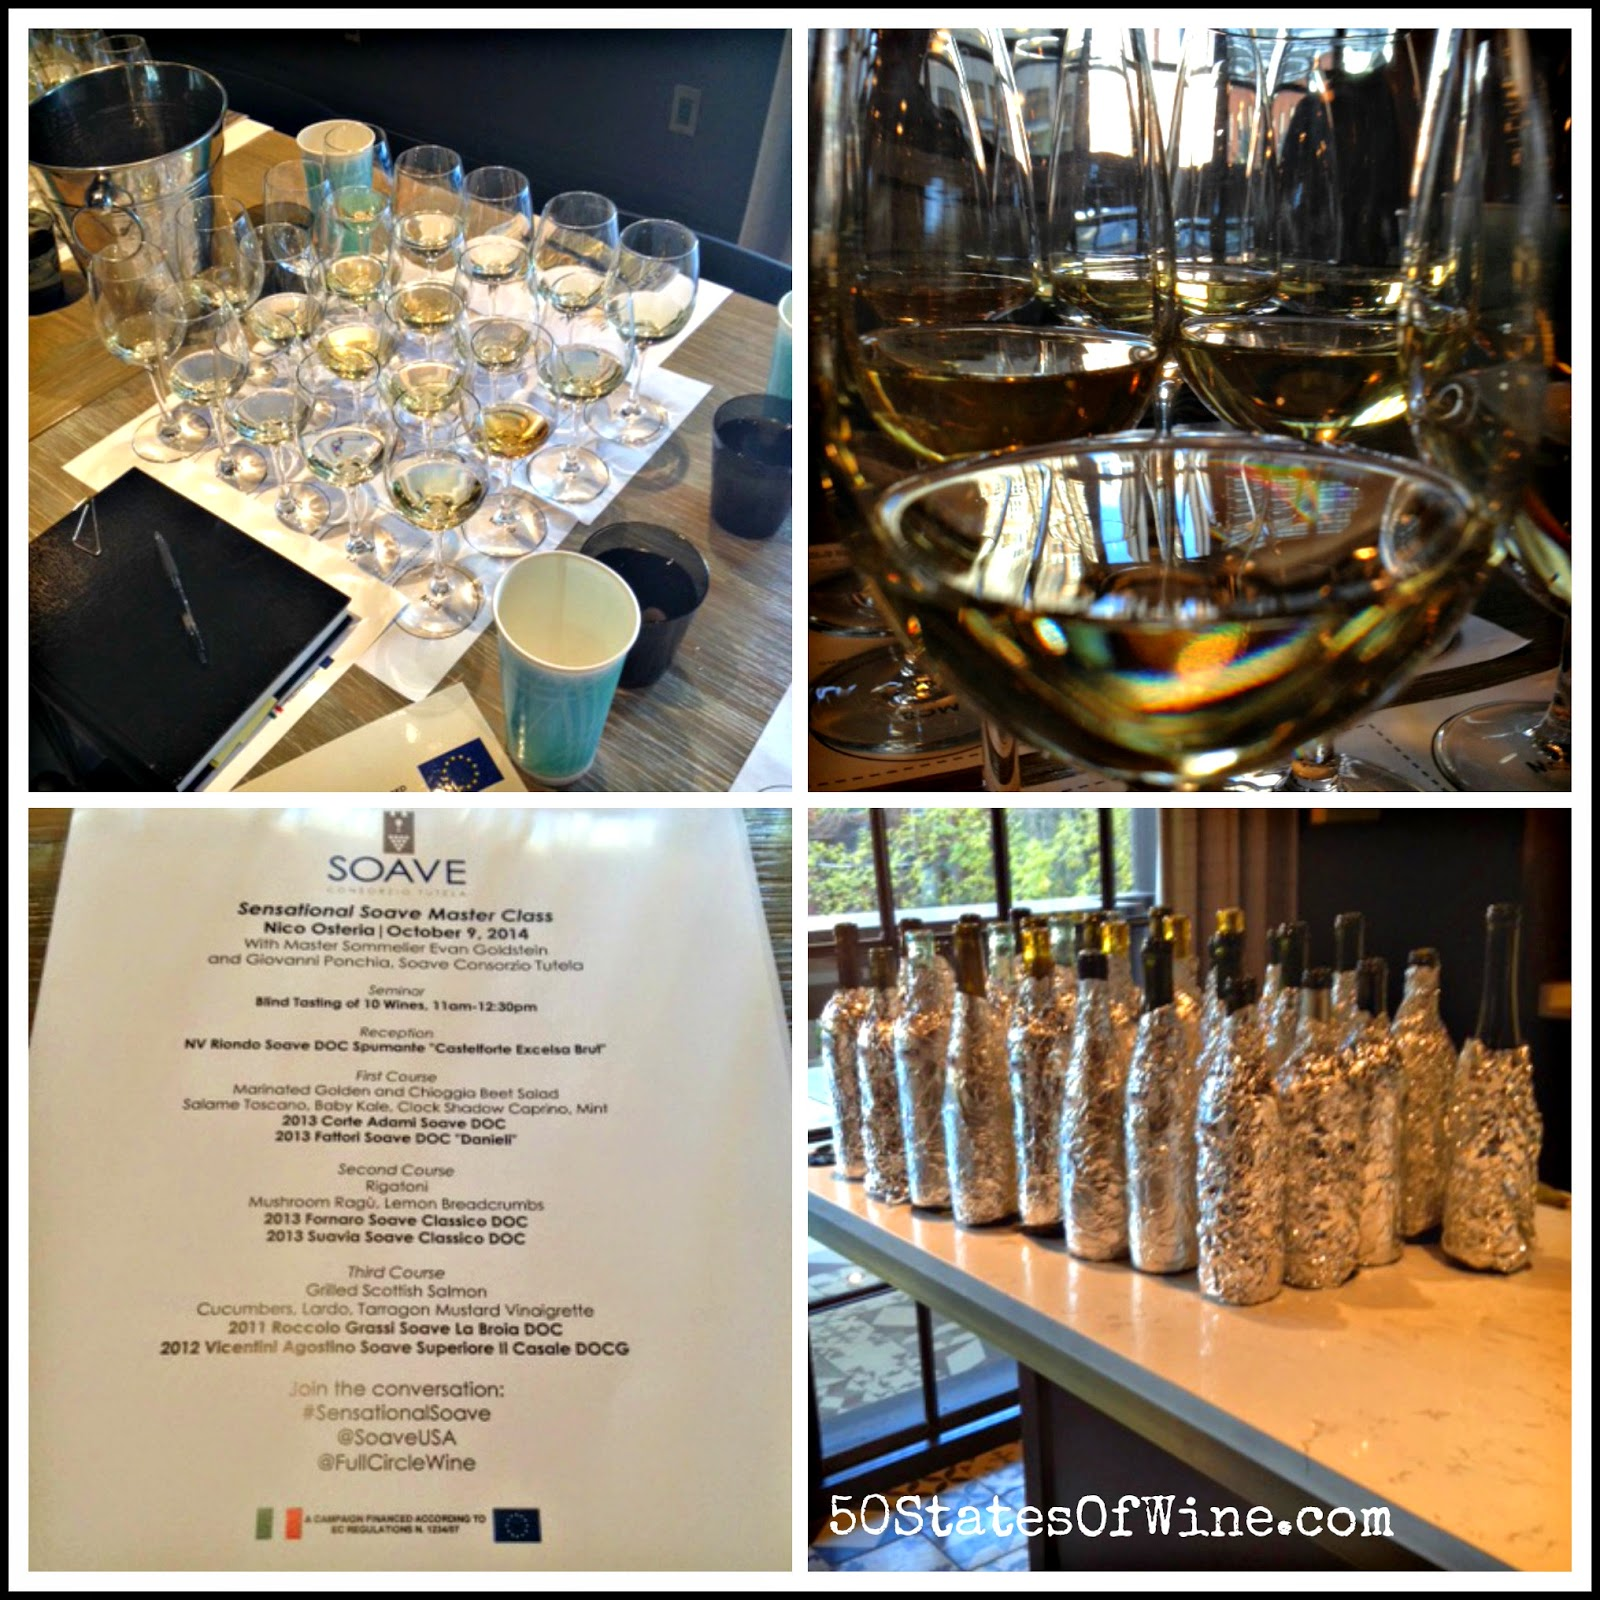 Sensational Soave Master Class - Chicago